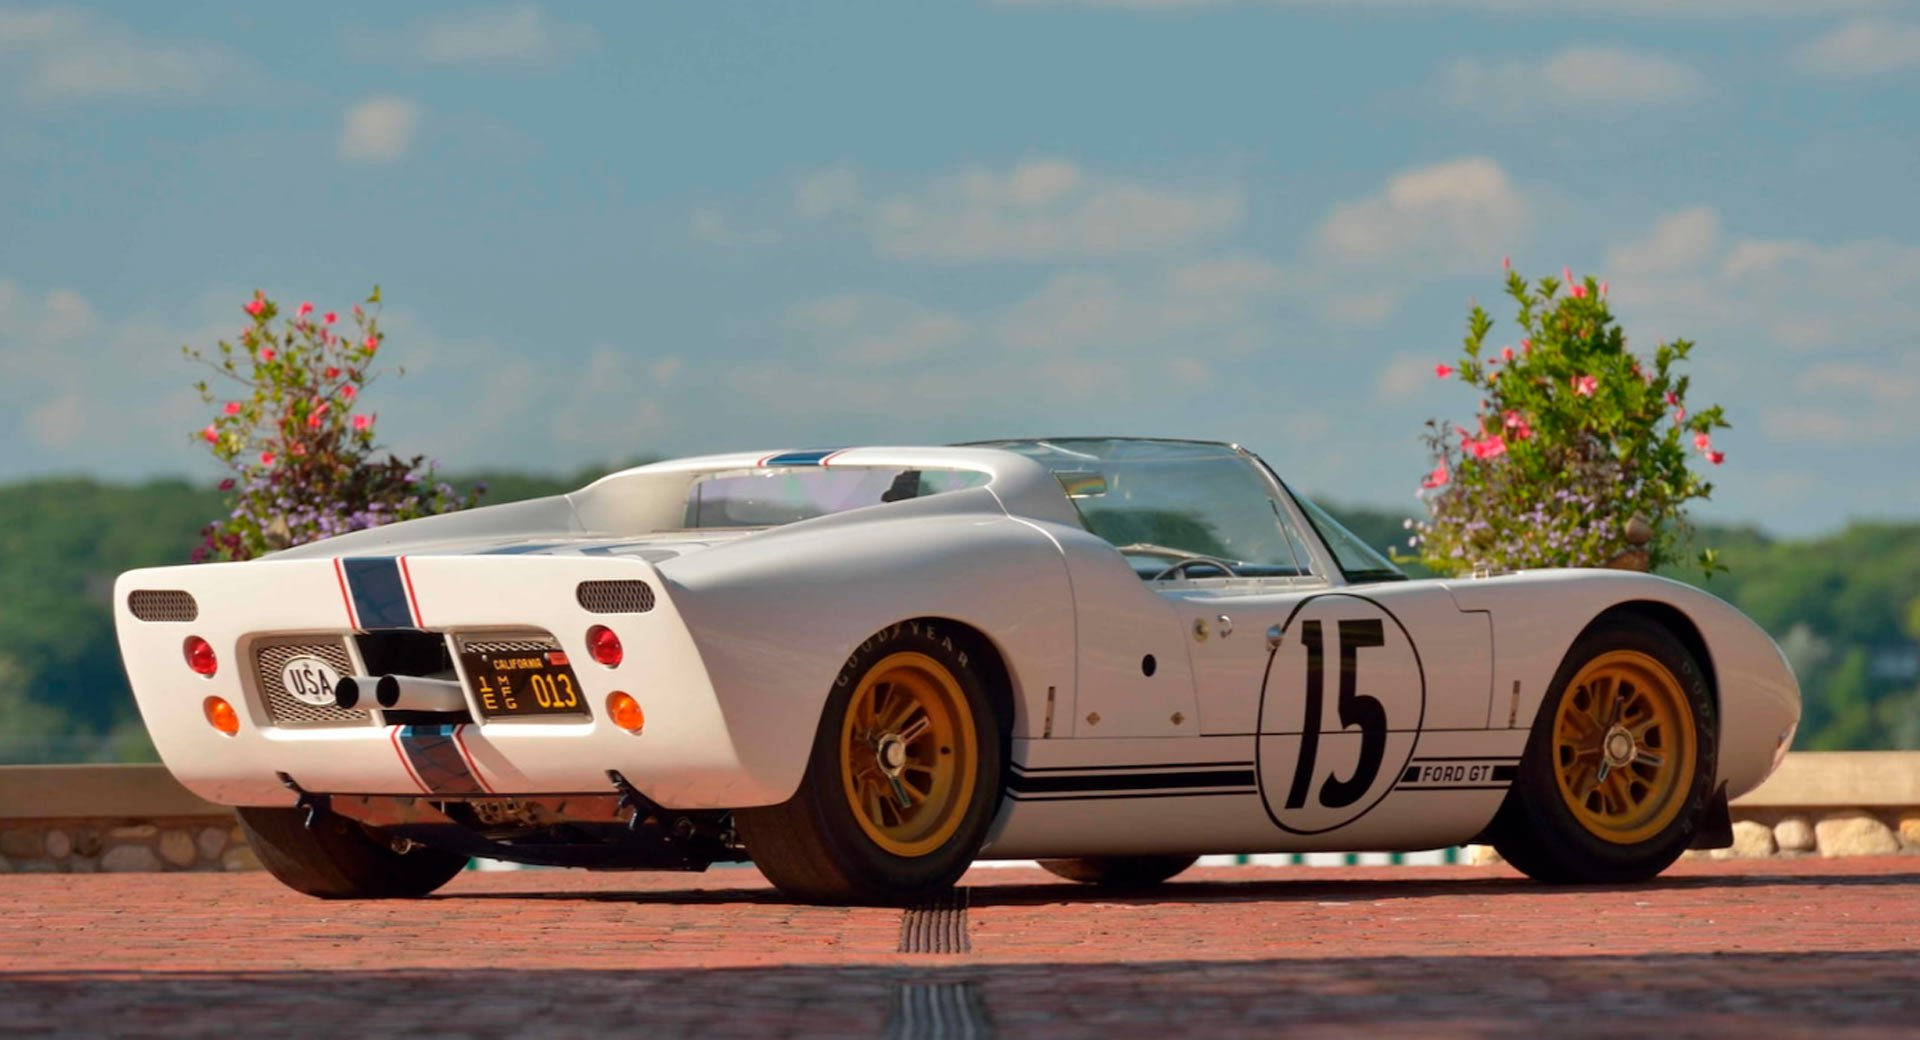 Ford GT Roadster Prototype 1965 in auction (4)